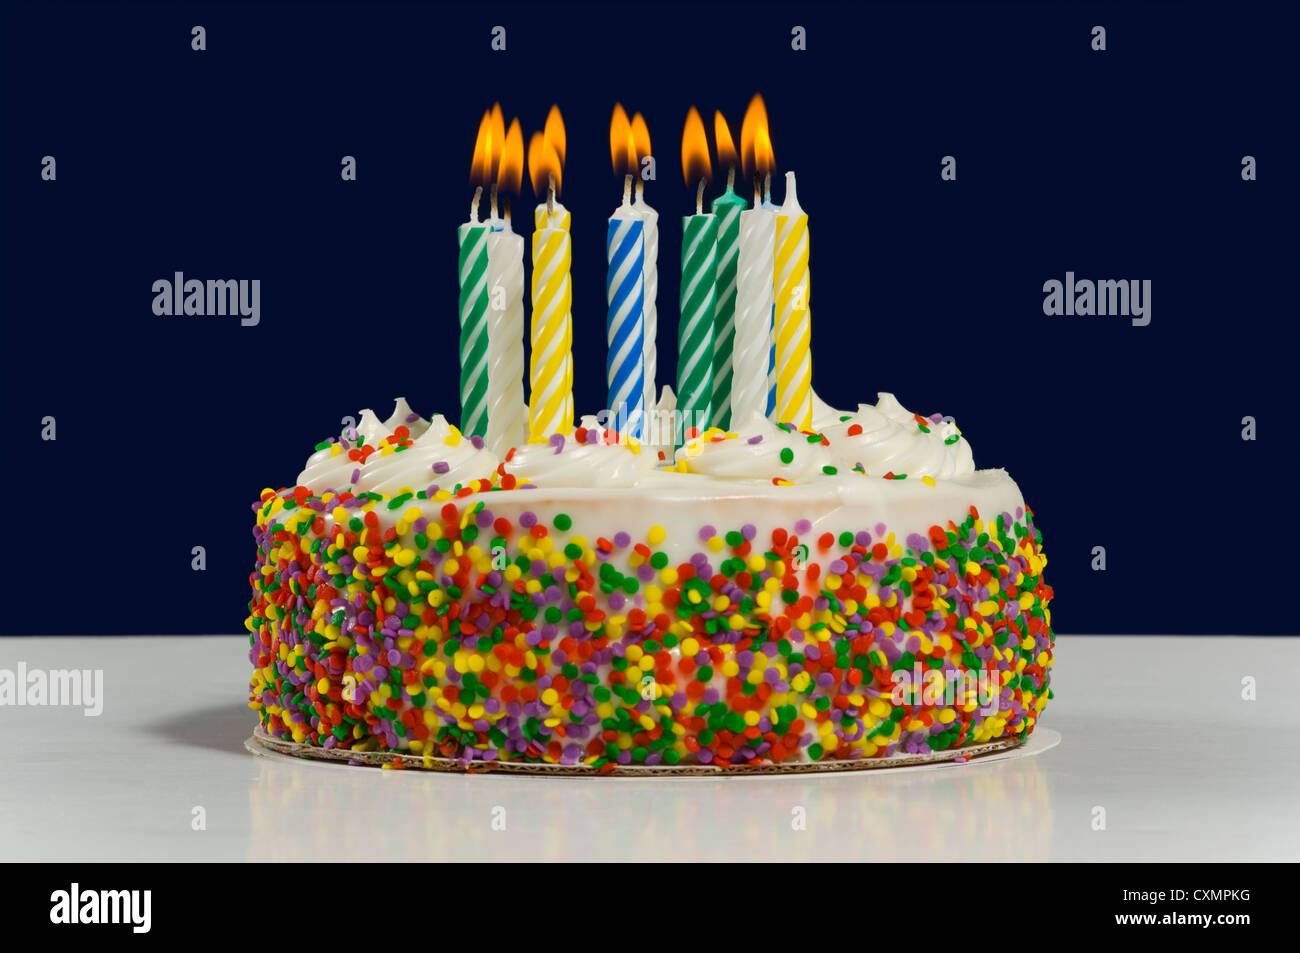 White Birthday Cake With Candy Sprinkles Multi Colored Candles On Dark Blue Background